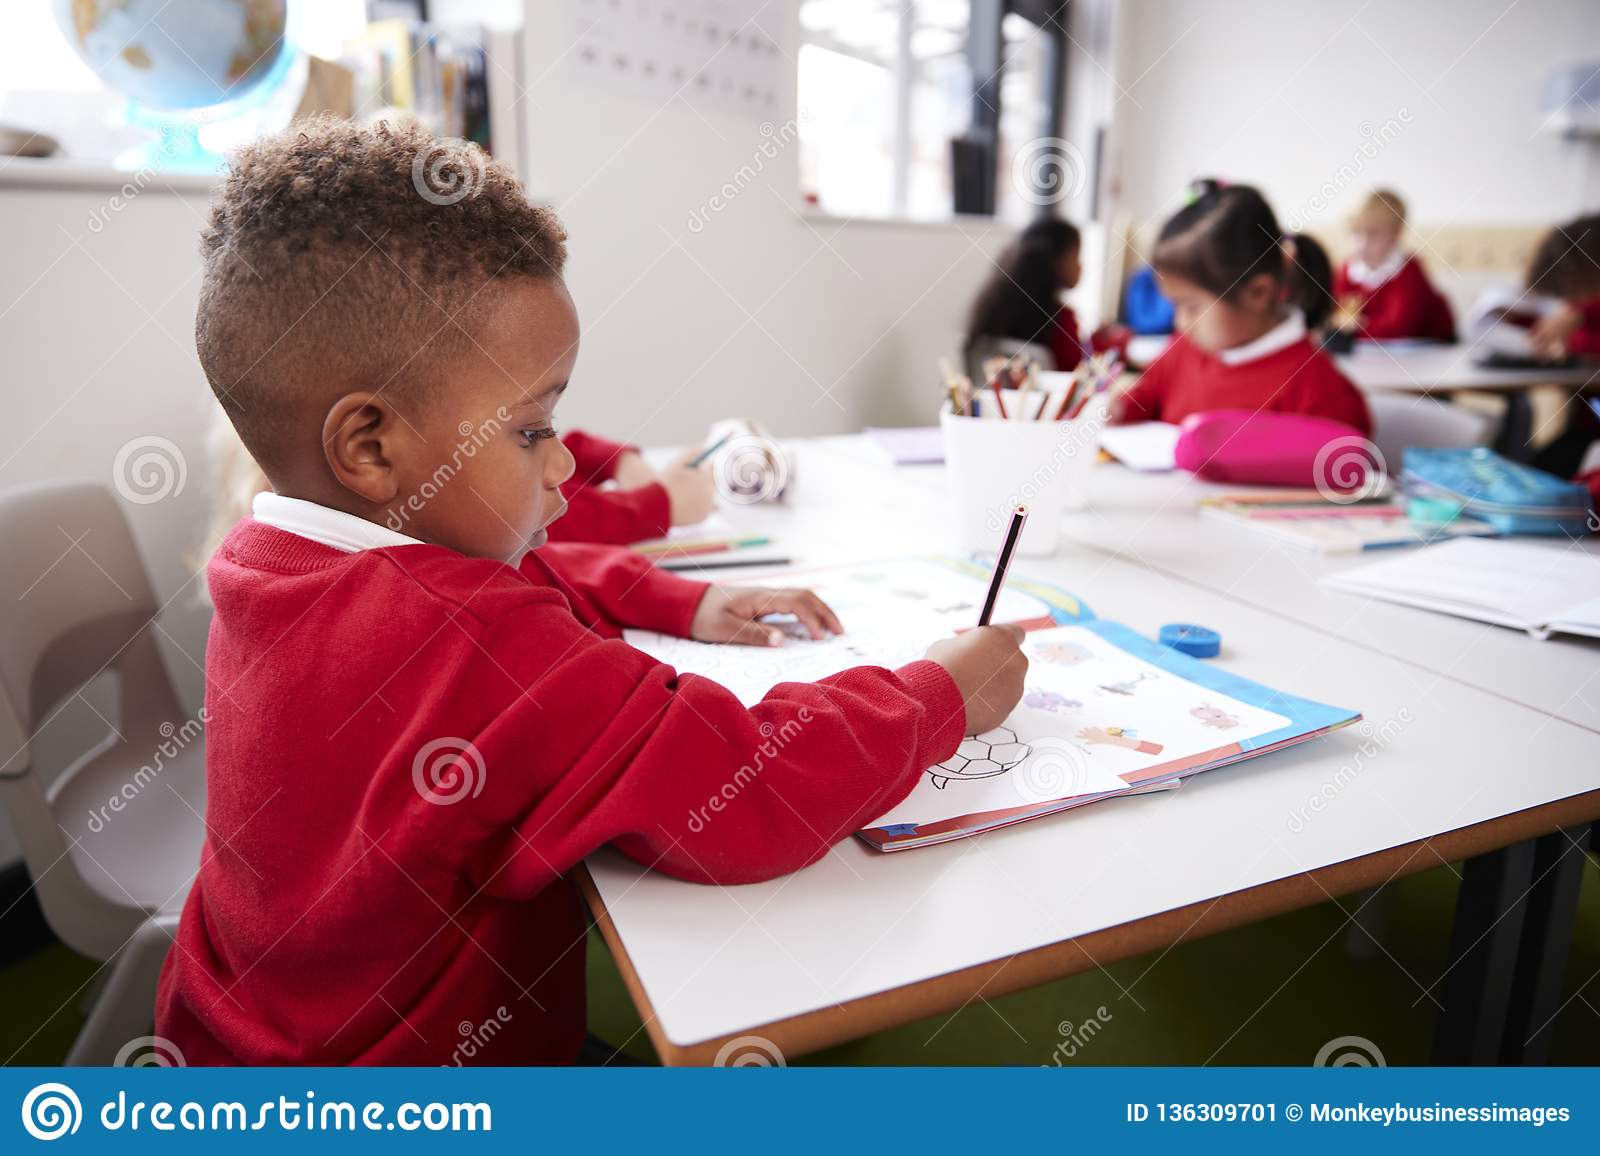 Young black schoolboy wearing school uniform sitting at a desk in an infant school classroom drawing, close up, side view